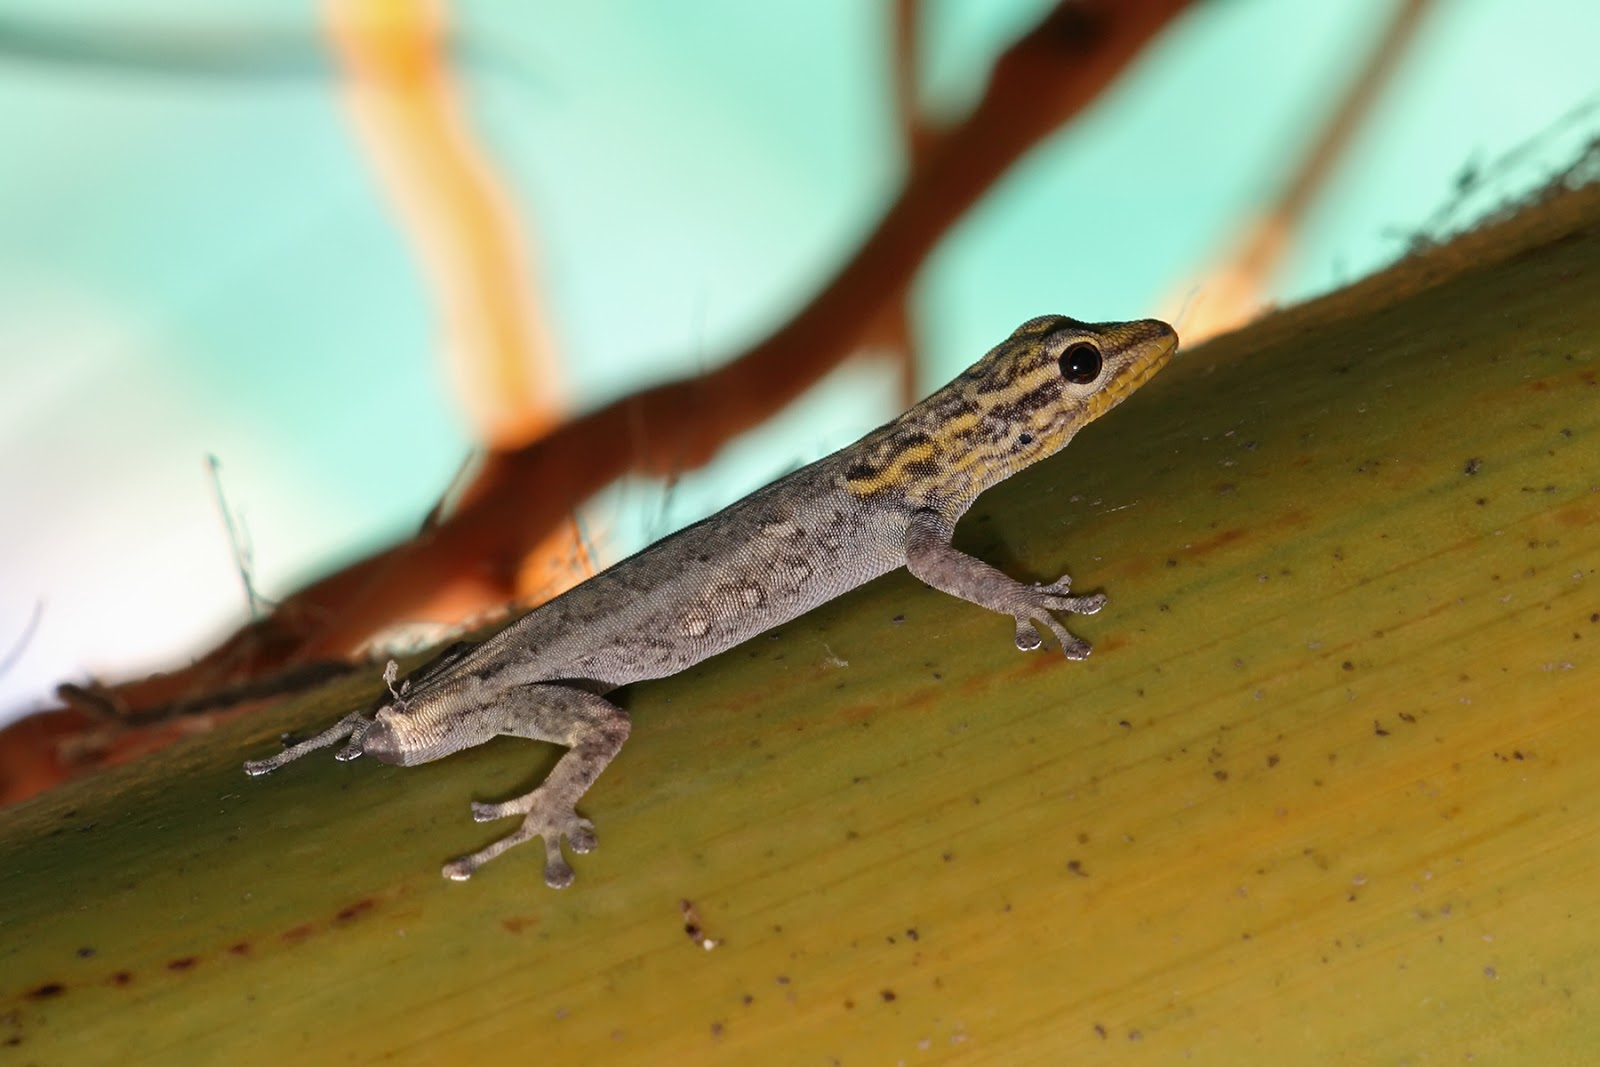 Reptiles: White-headed dwarf gecko